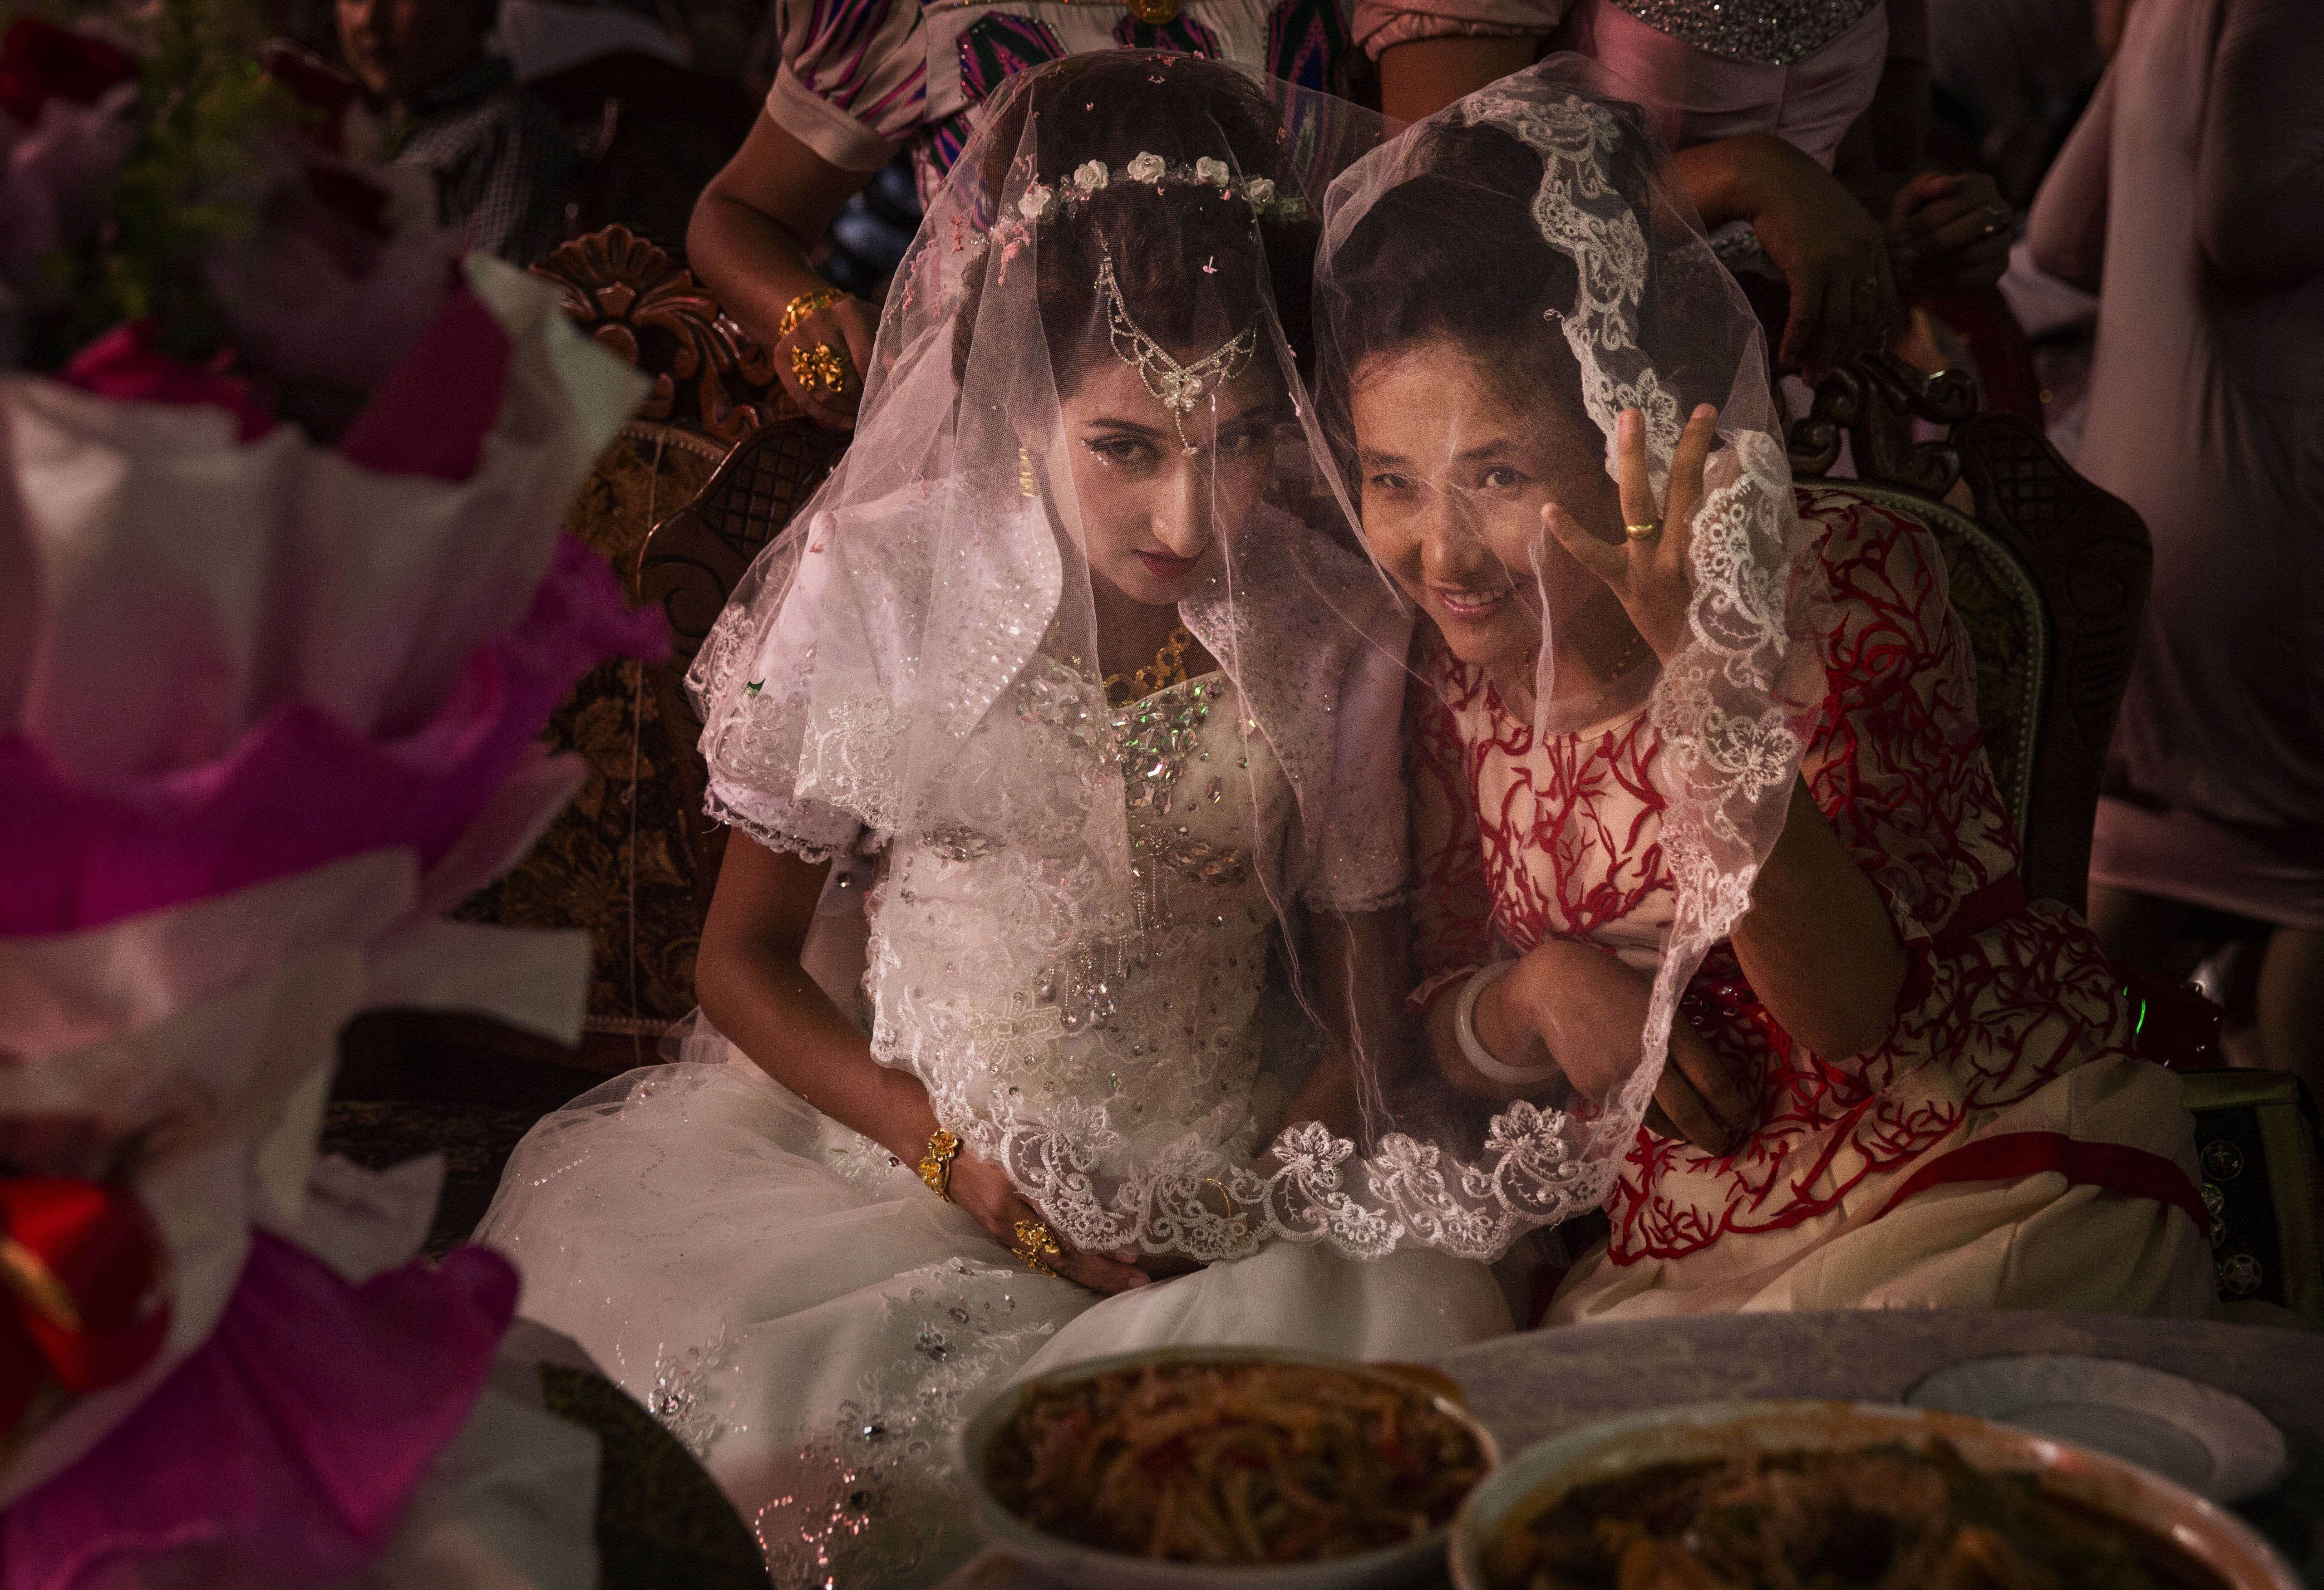 Aug. 2, 2014. A Uyghur bride talks with a friend at her  wedding celebration in Kashgar, Xinjiang Province, China. Nearly 100 people have been killed in unrest in the restive Xinjiang Province in the last week.